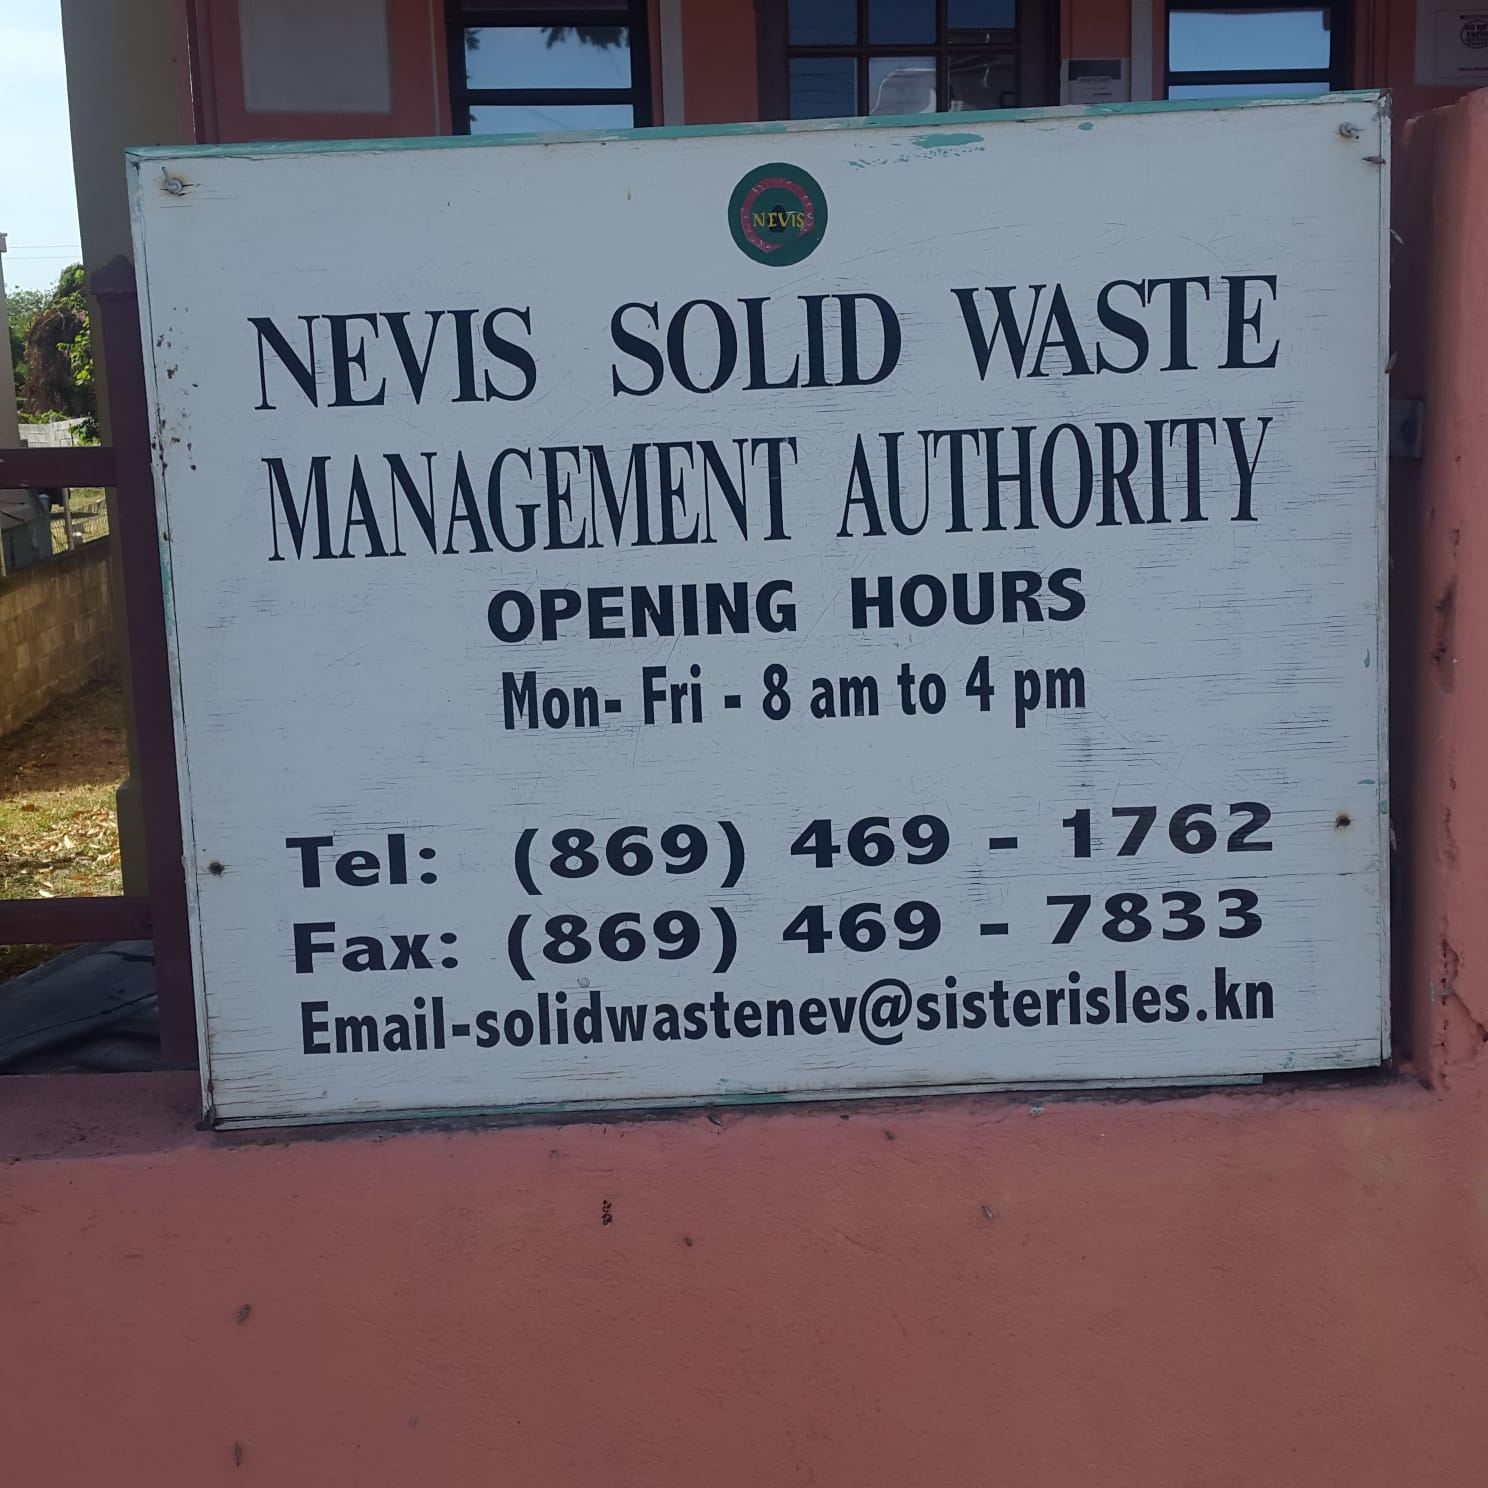 Nevis Solid Waste Management Authority's offices in Ramsbury